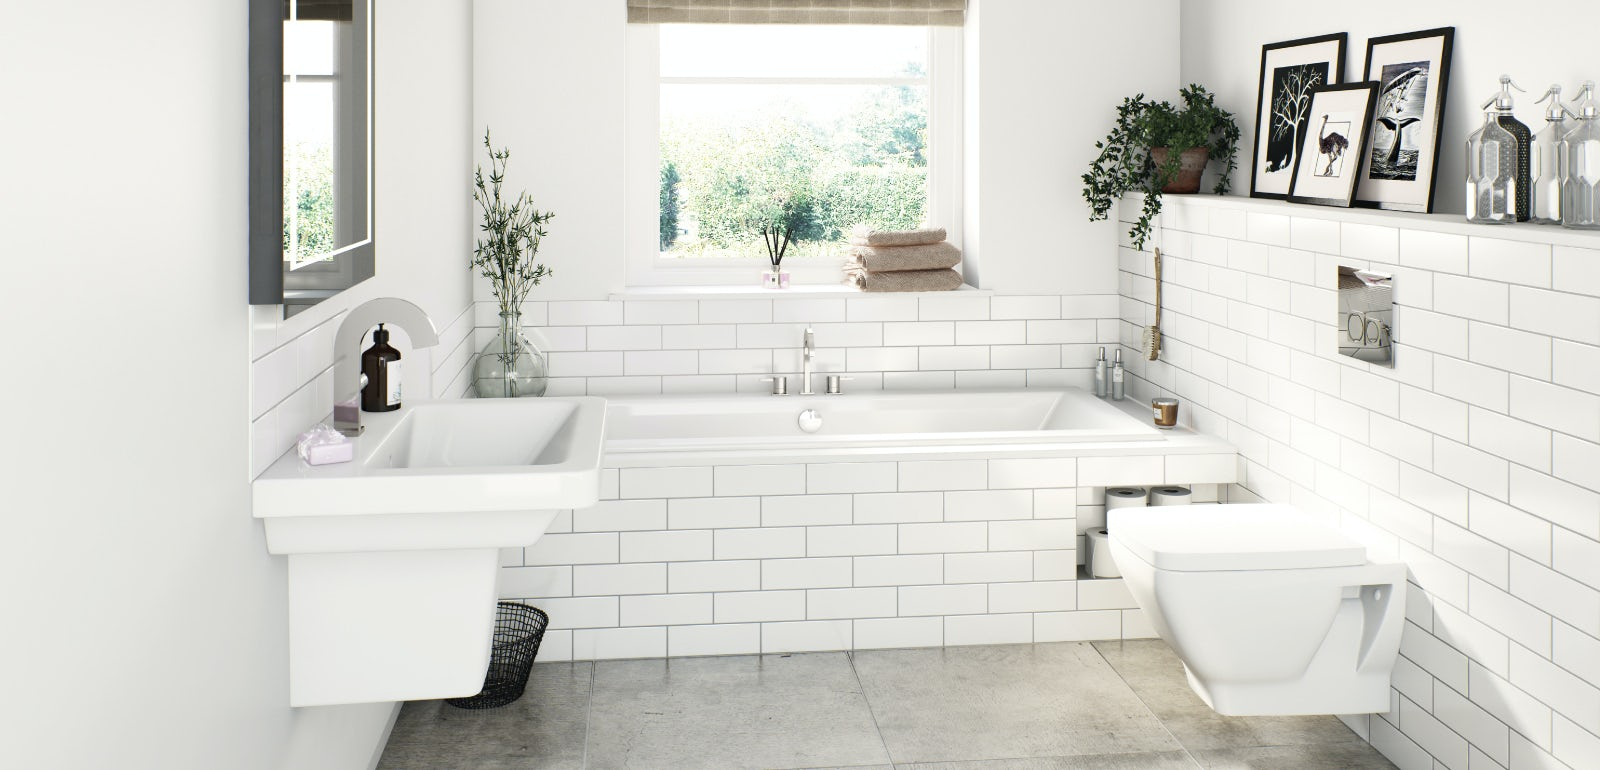 Bathrooms Home Decorations Design list of things